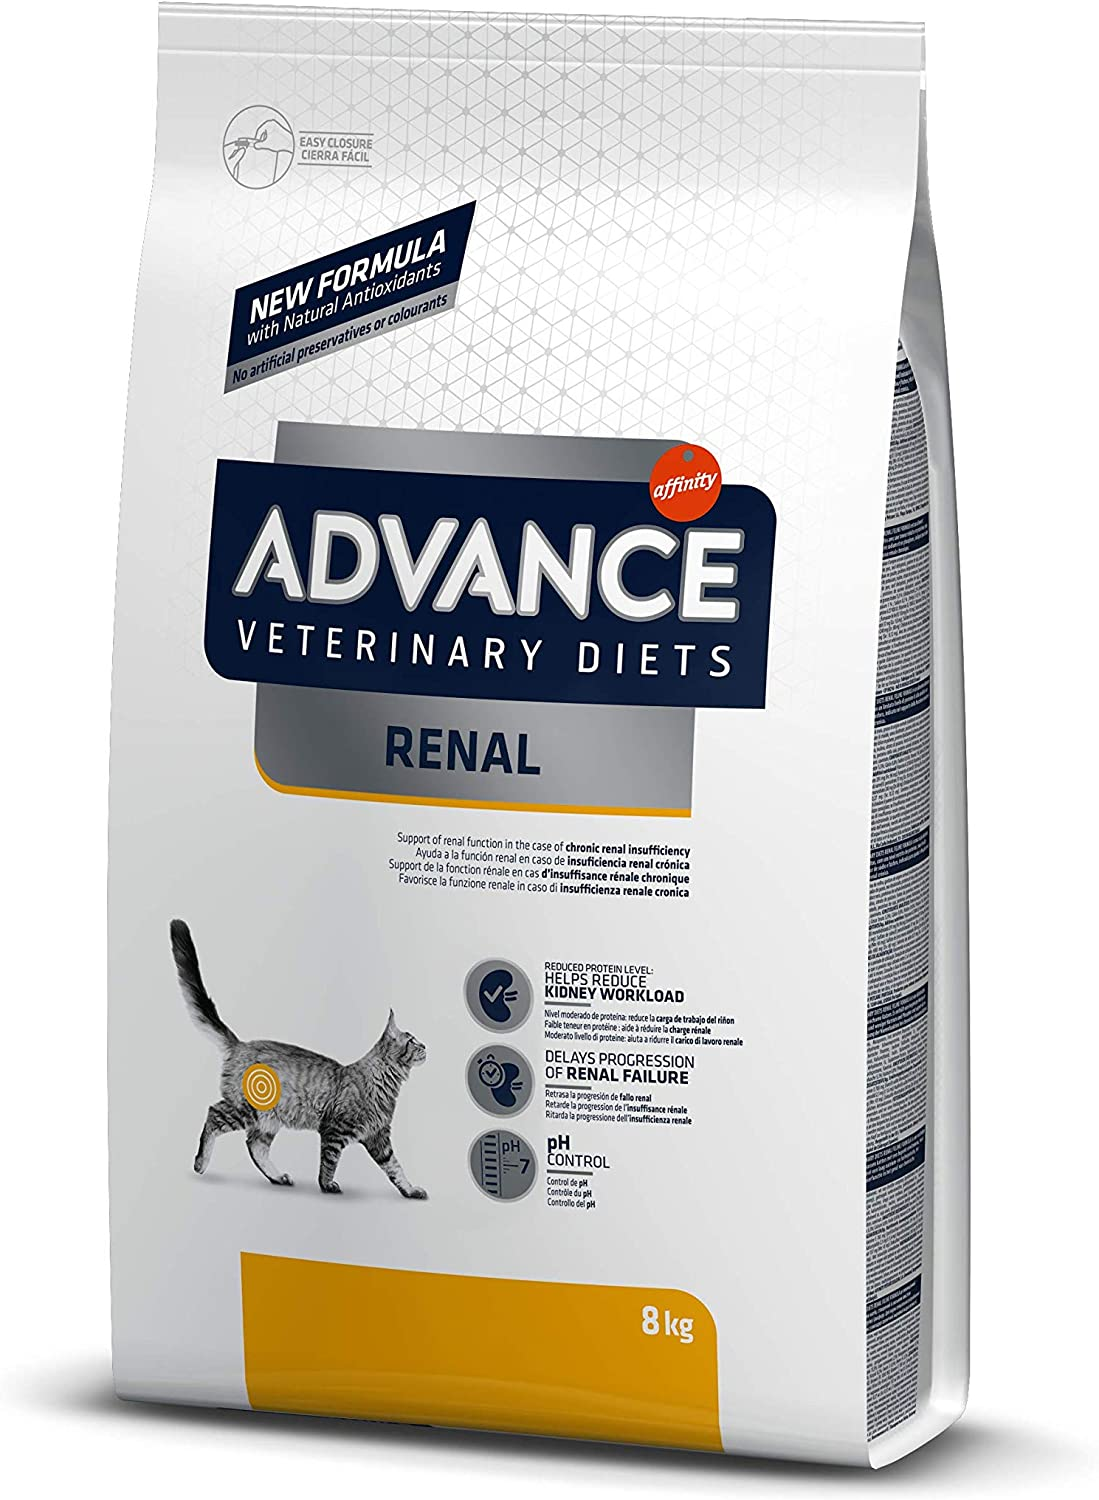 Advance Veterinary Diets Advance Veterinary Diets Renal Failure 8 kg 8000 g